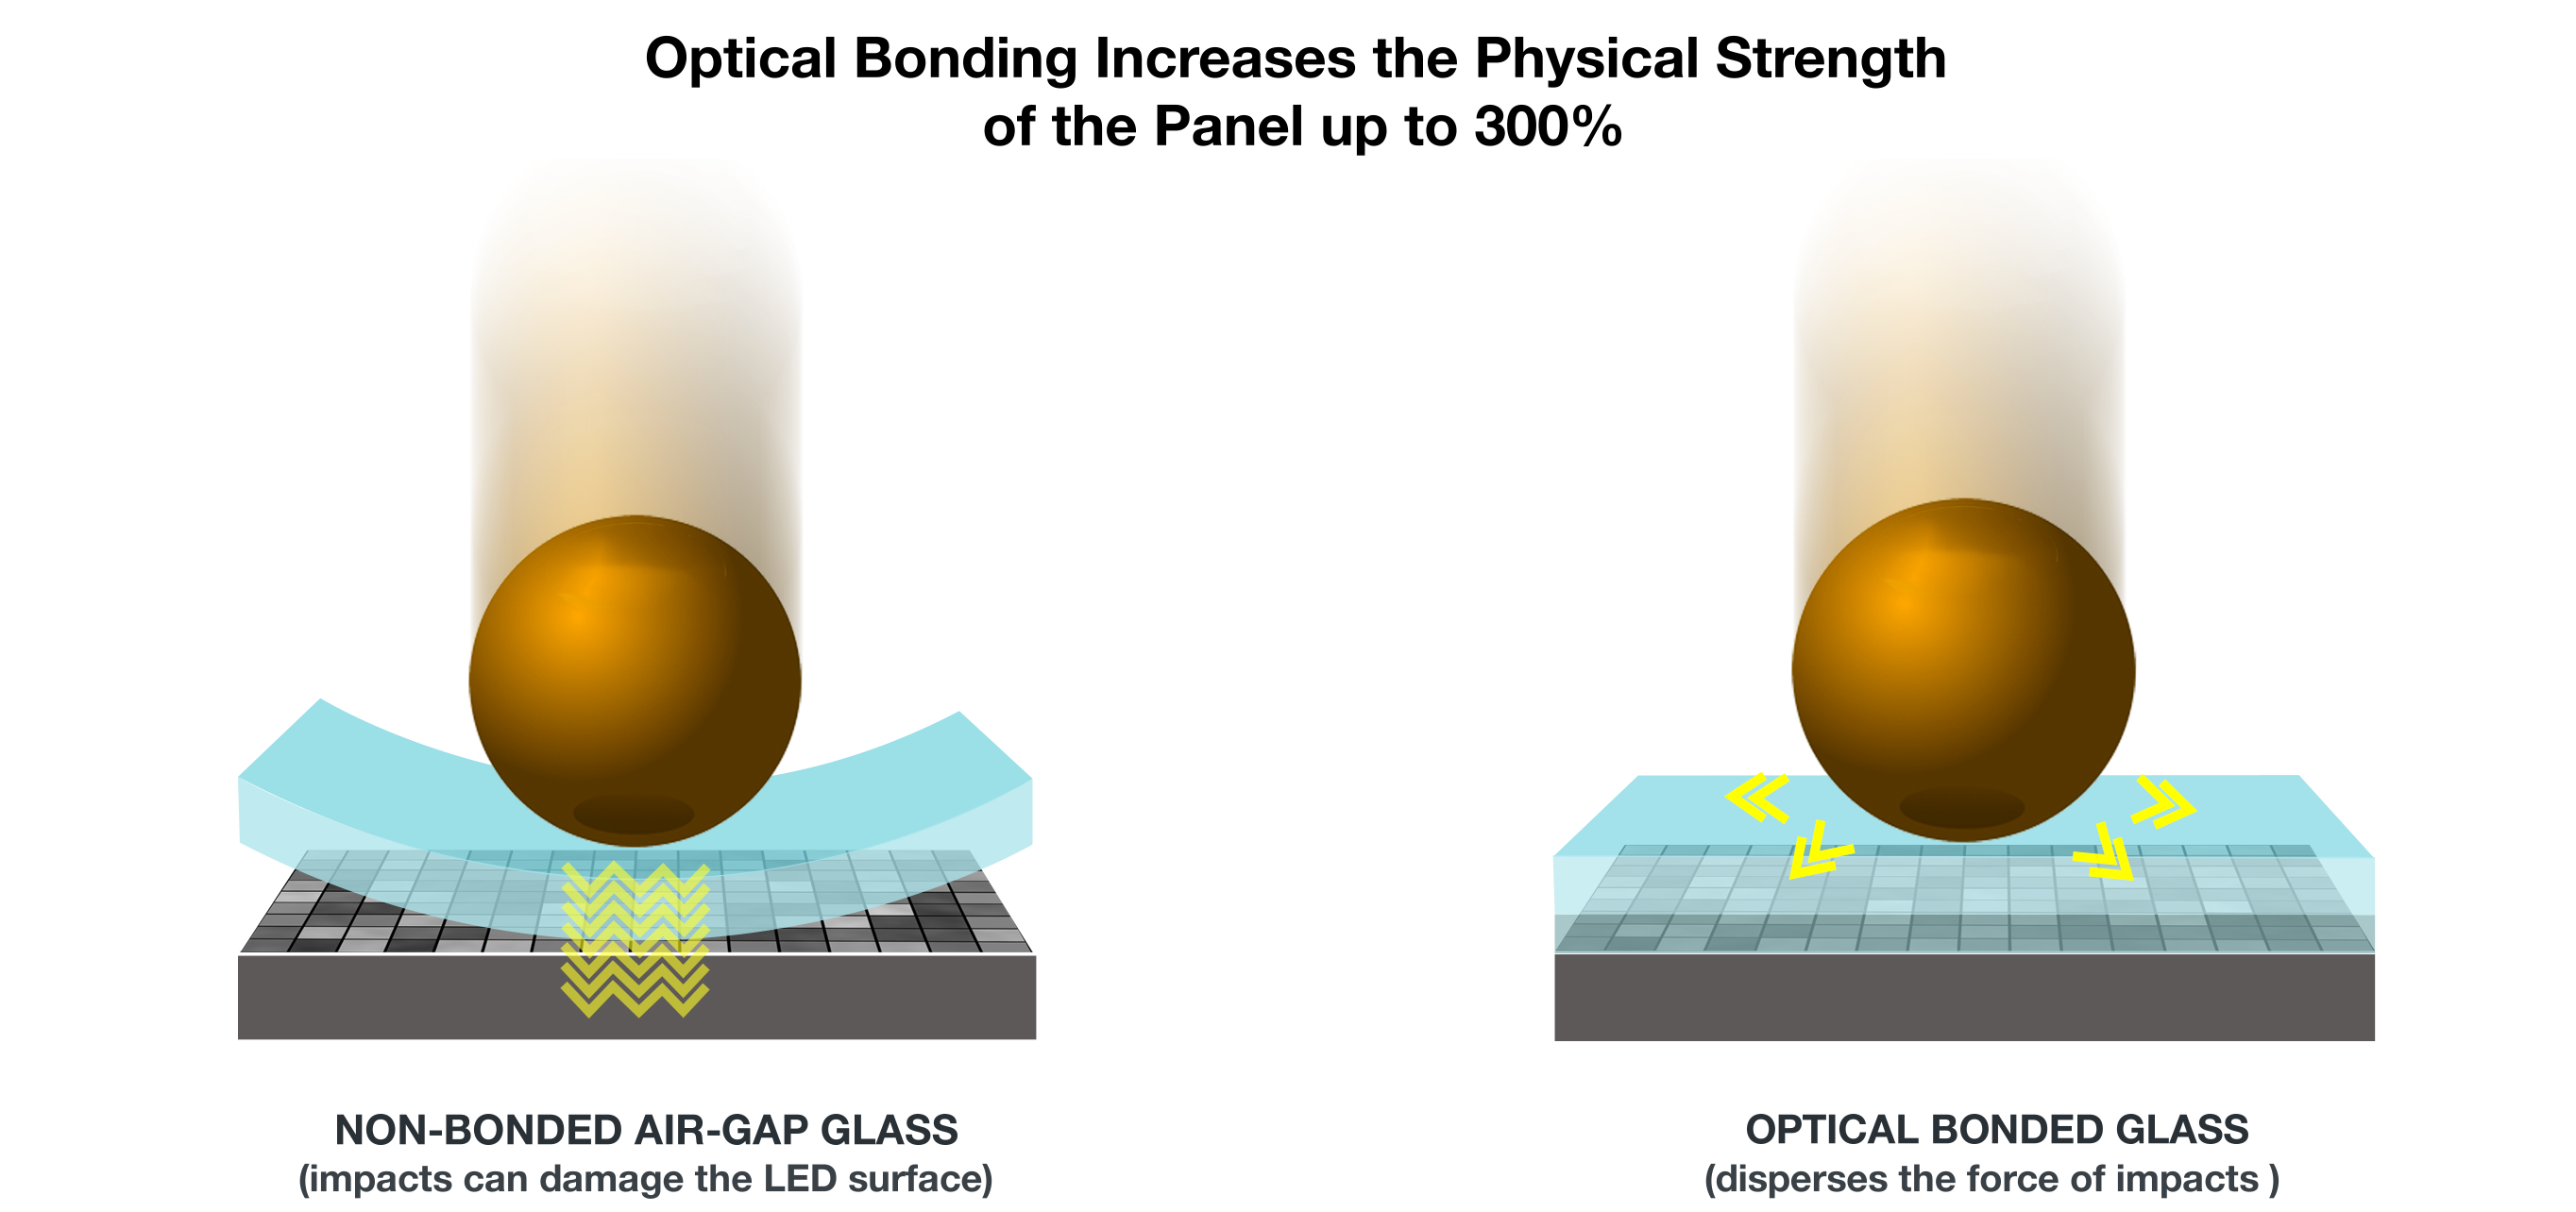 opticalbonded